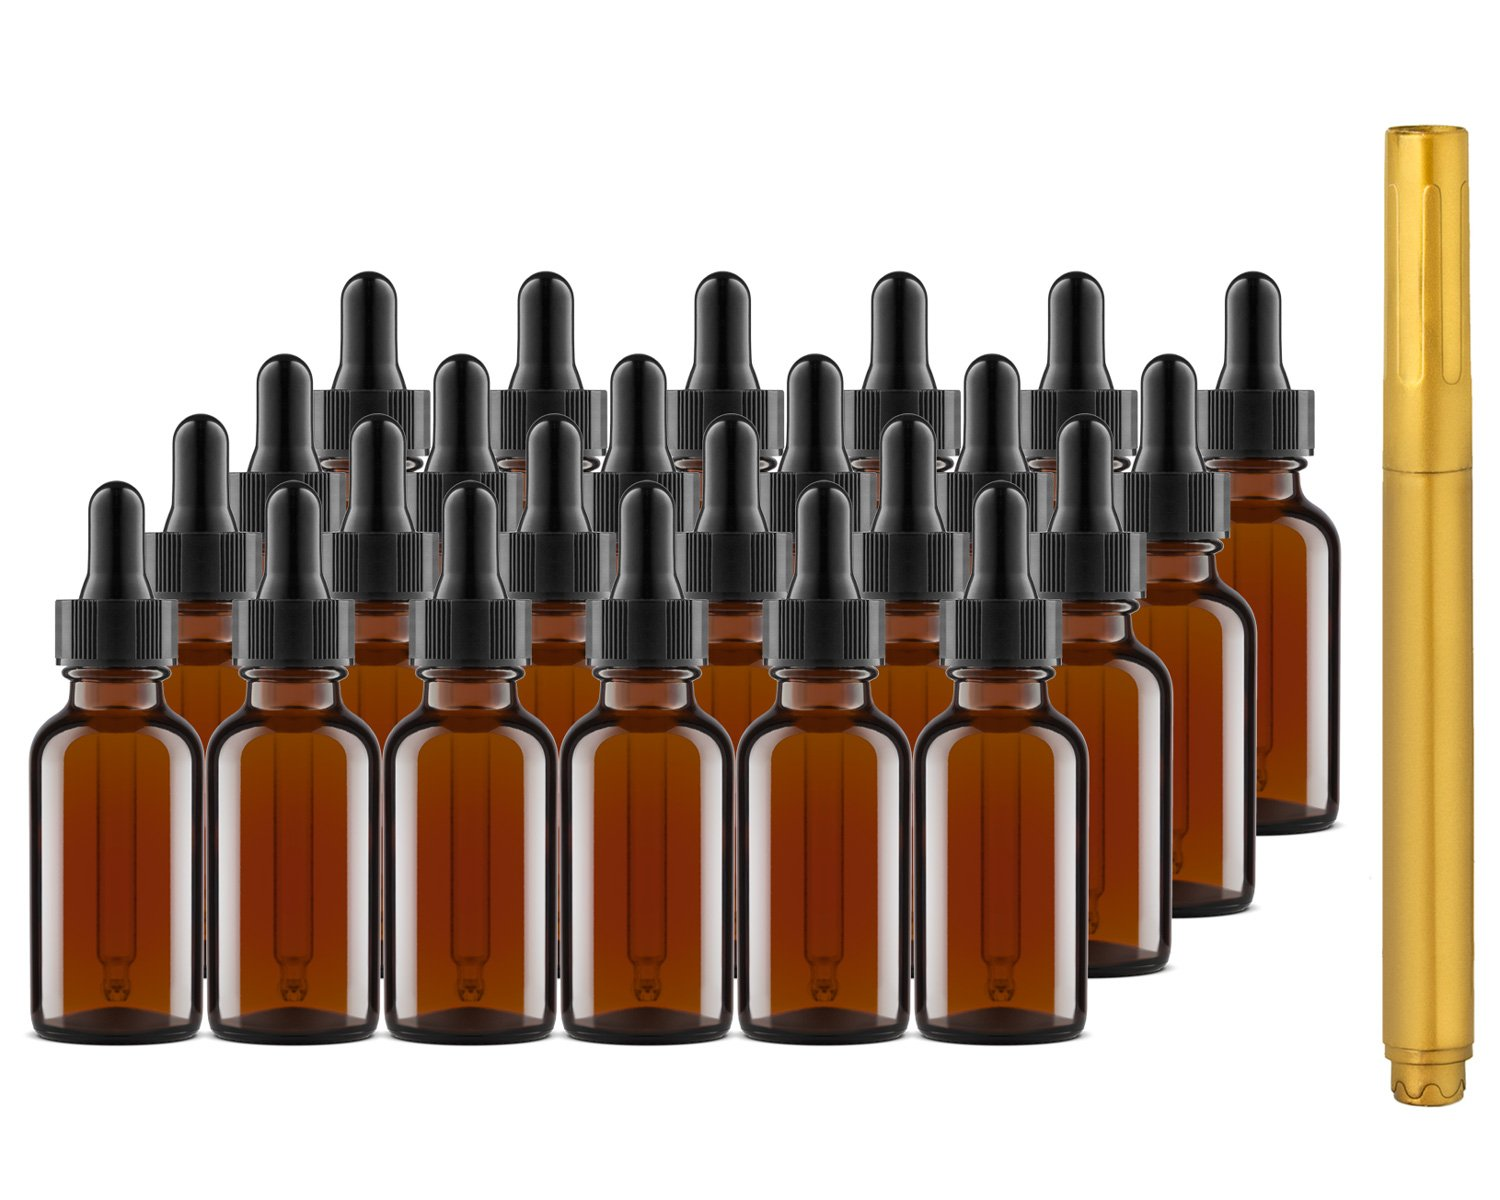 Culinaire 24 Pack Of 1 oz Amber Glass Bottles with Dropper Tops and Gold Glass Pen by Culinaire